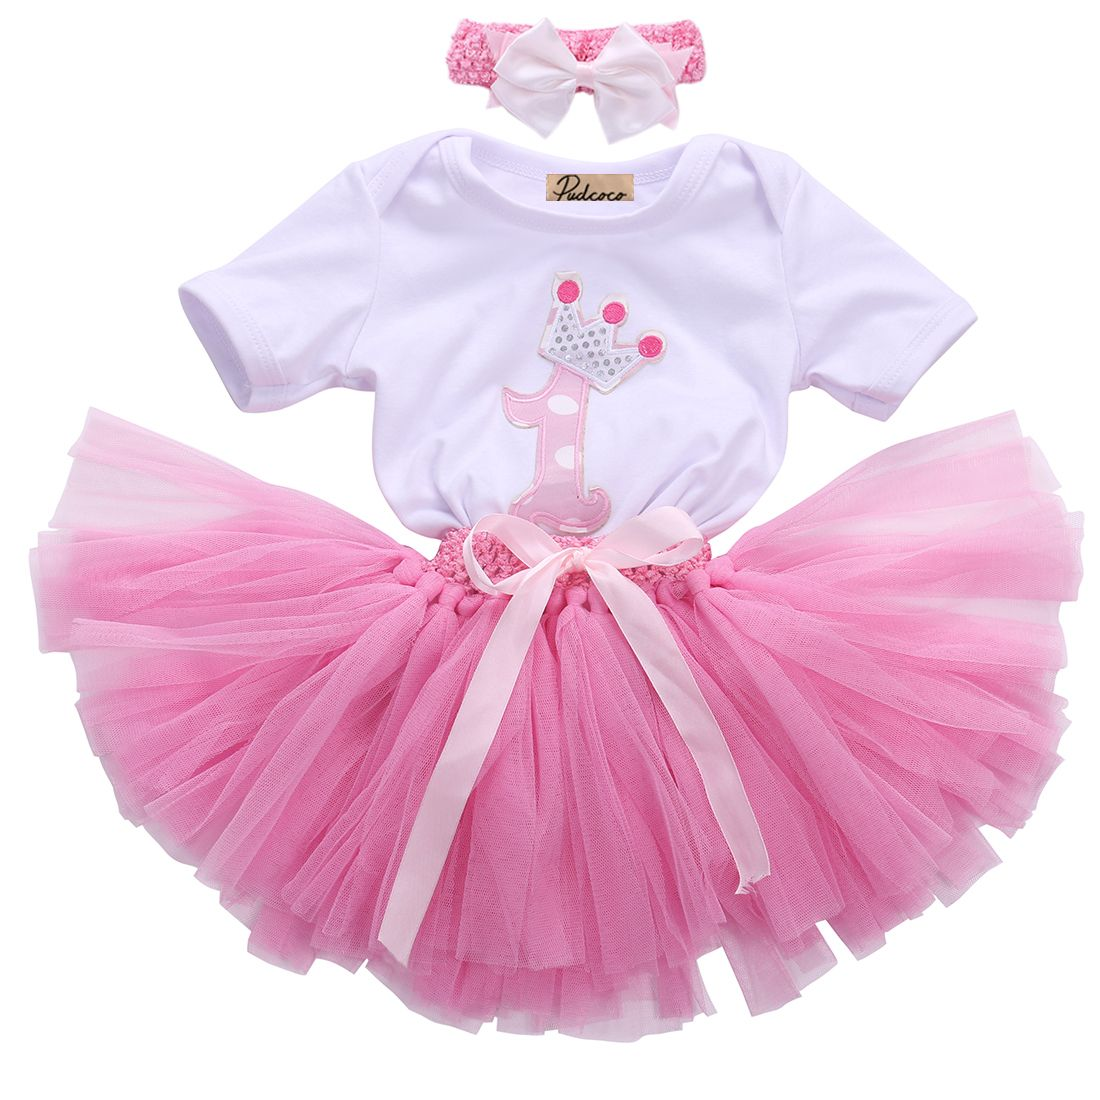 My First Birthday Infant Baby Girl Crown Romper Tulle Tutu Skirt Headband Outfit